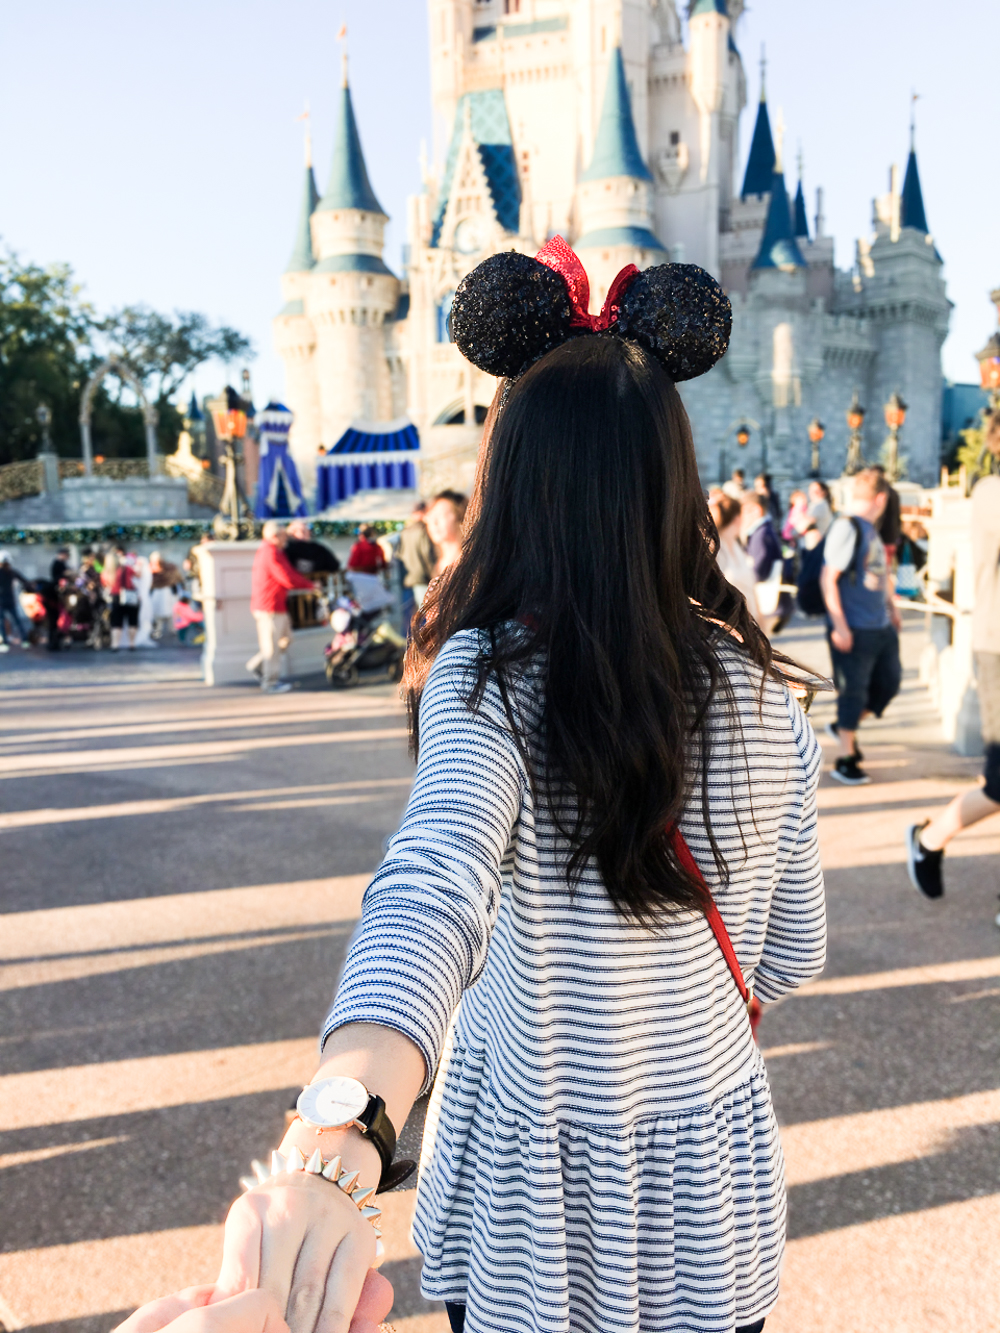 follow me to the happiest place on earth, walt disney world magic kingdom orlando